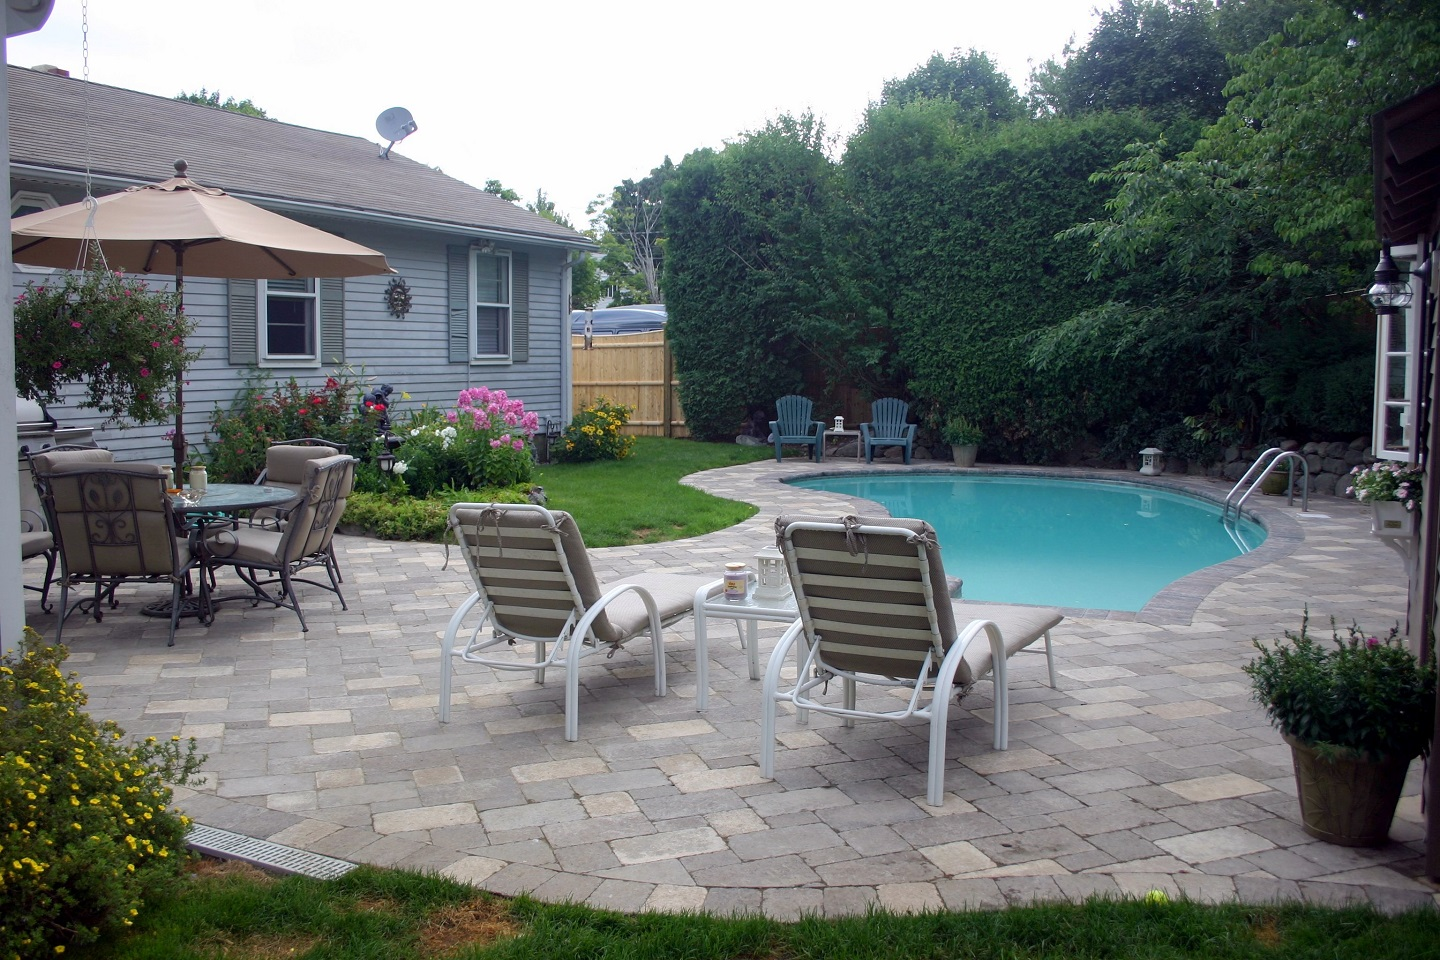 Deck builder - new pool deck in Cambridge MA